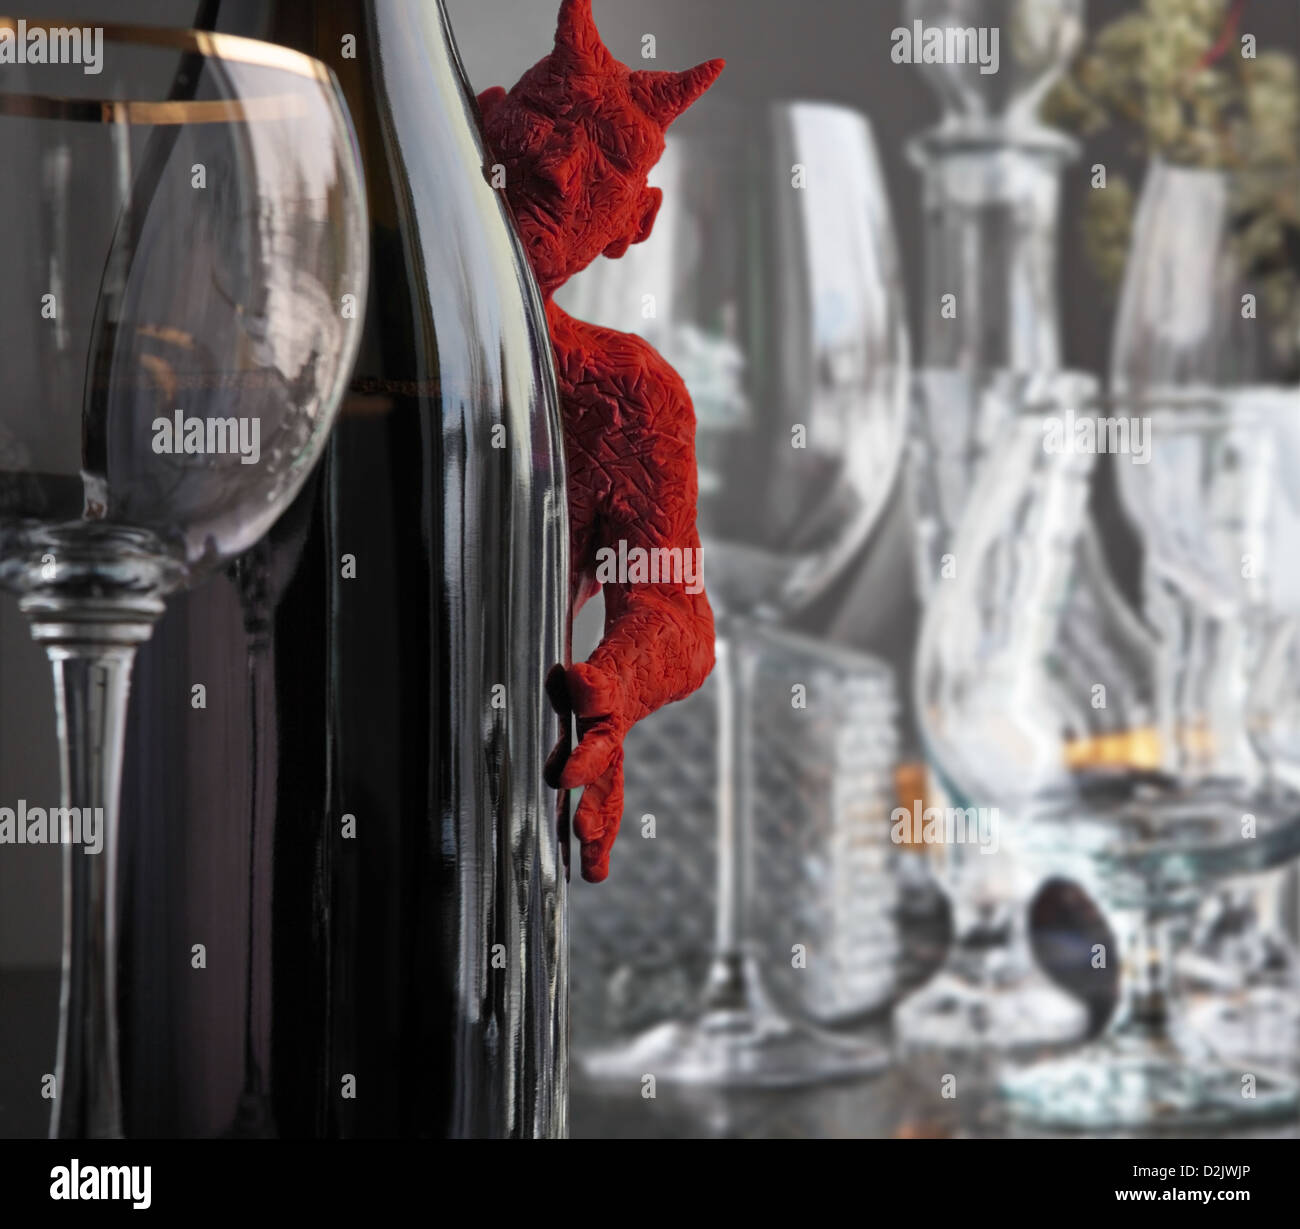 a little red devil peeks out from behind a bottle of wine. Some glasses are spread out on the inlaid table. - Stock Image